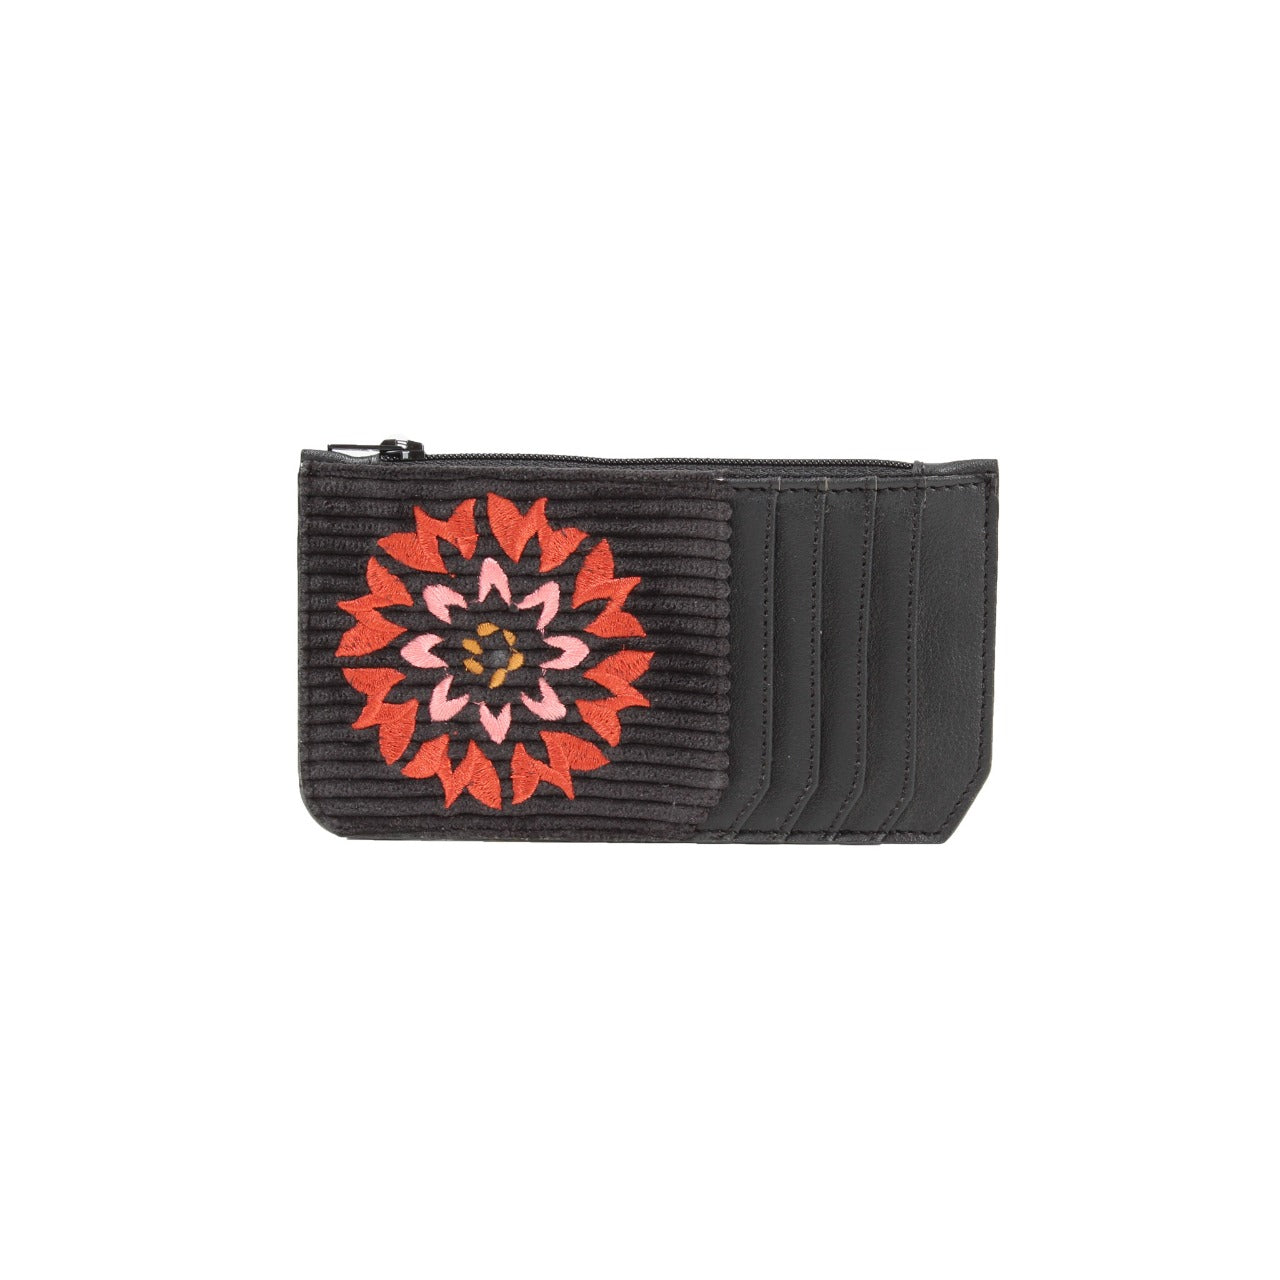 Aulora Card Holder Black